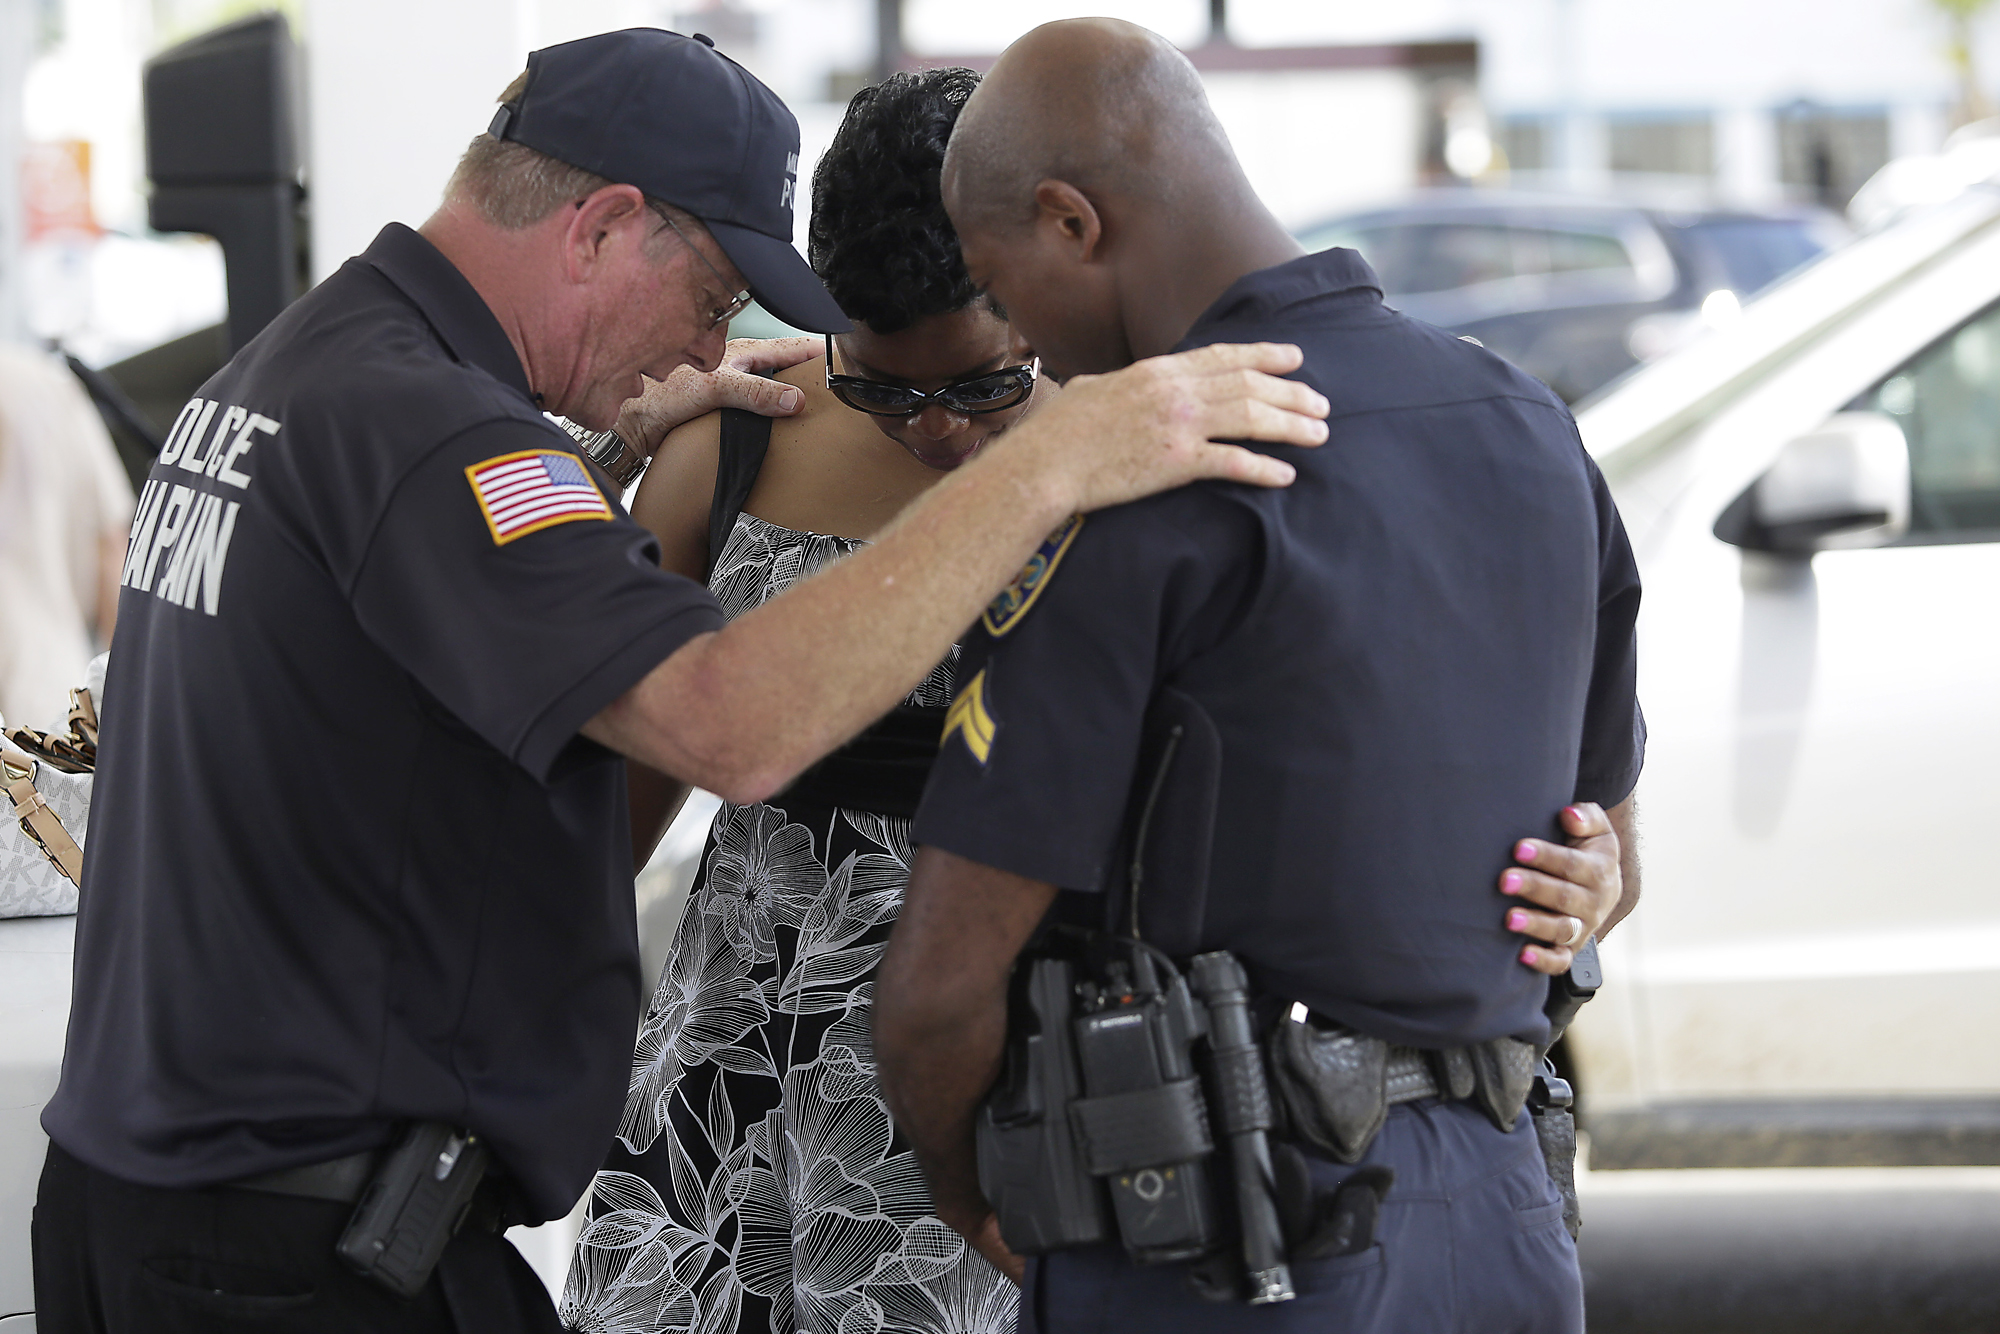 Millville, New Jersey police chaplain Bob Ossler (L) prays with Baton Rouge Police Department Corporal Trina Dorsey (C) and her brother Corporal Joseph Keller near a makeshift memorial for three police officers on July 19, 2016 in Baton Rouge, Louisiana.